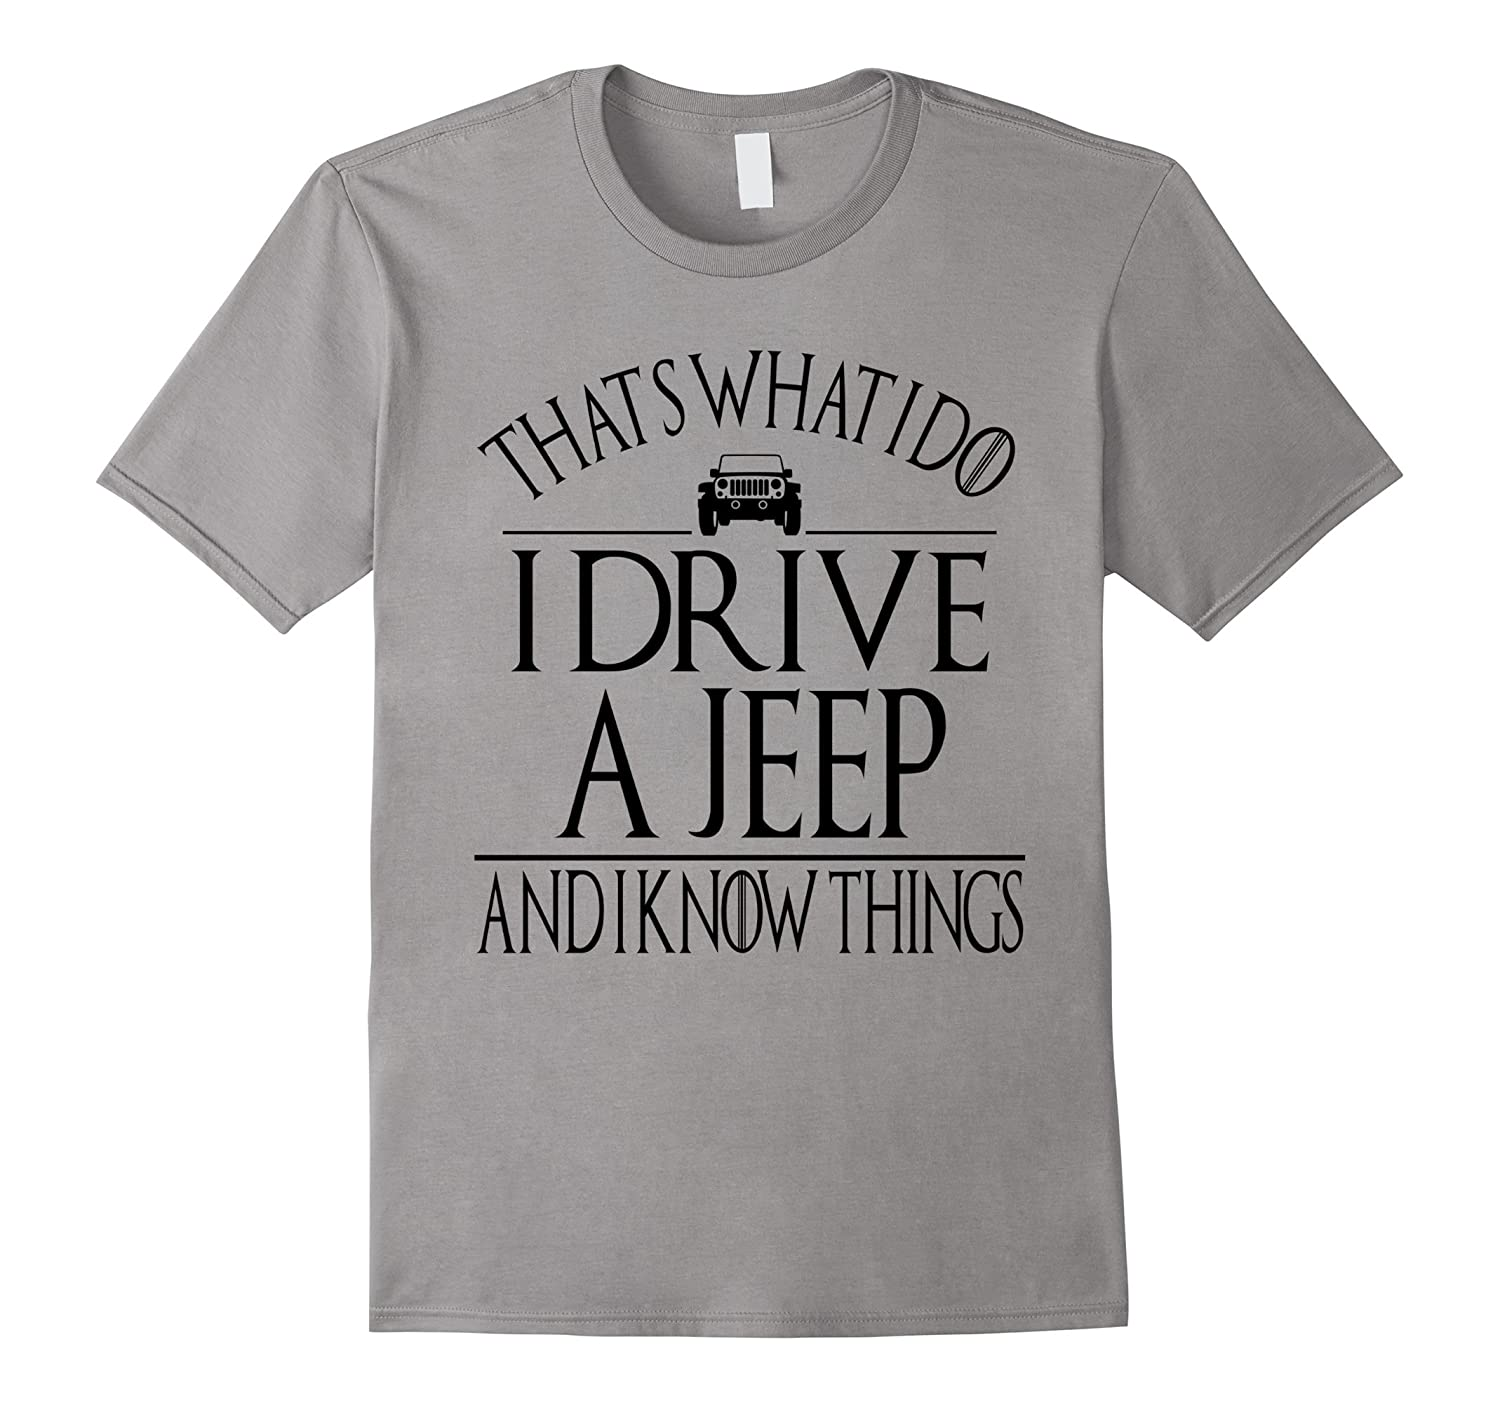 THAT'S WHAT I DO I DRIVE A JEEP AND I KNOW THINGS White Tee